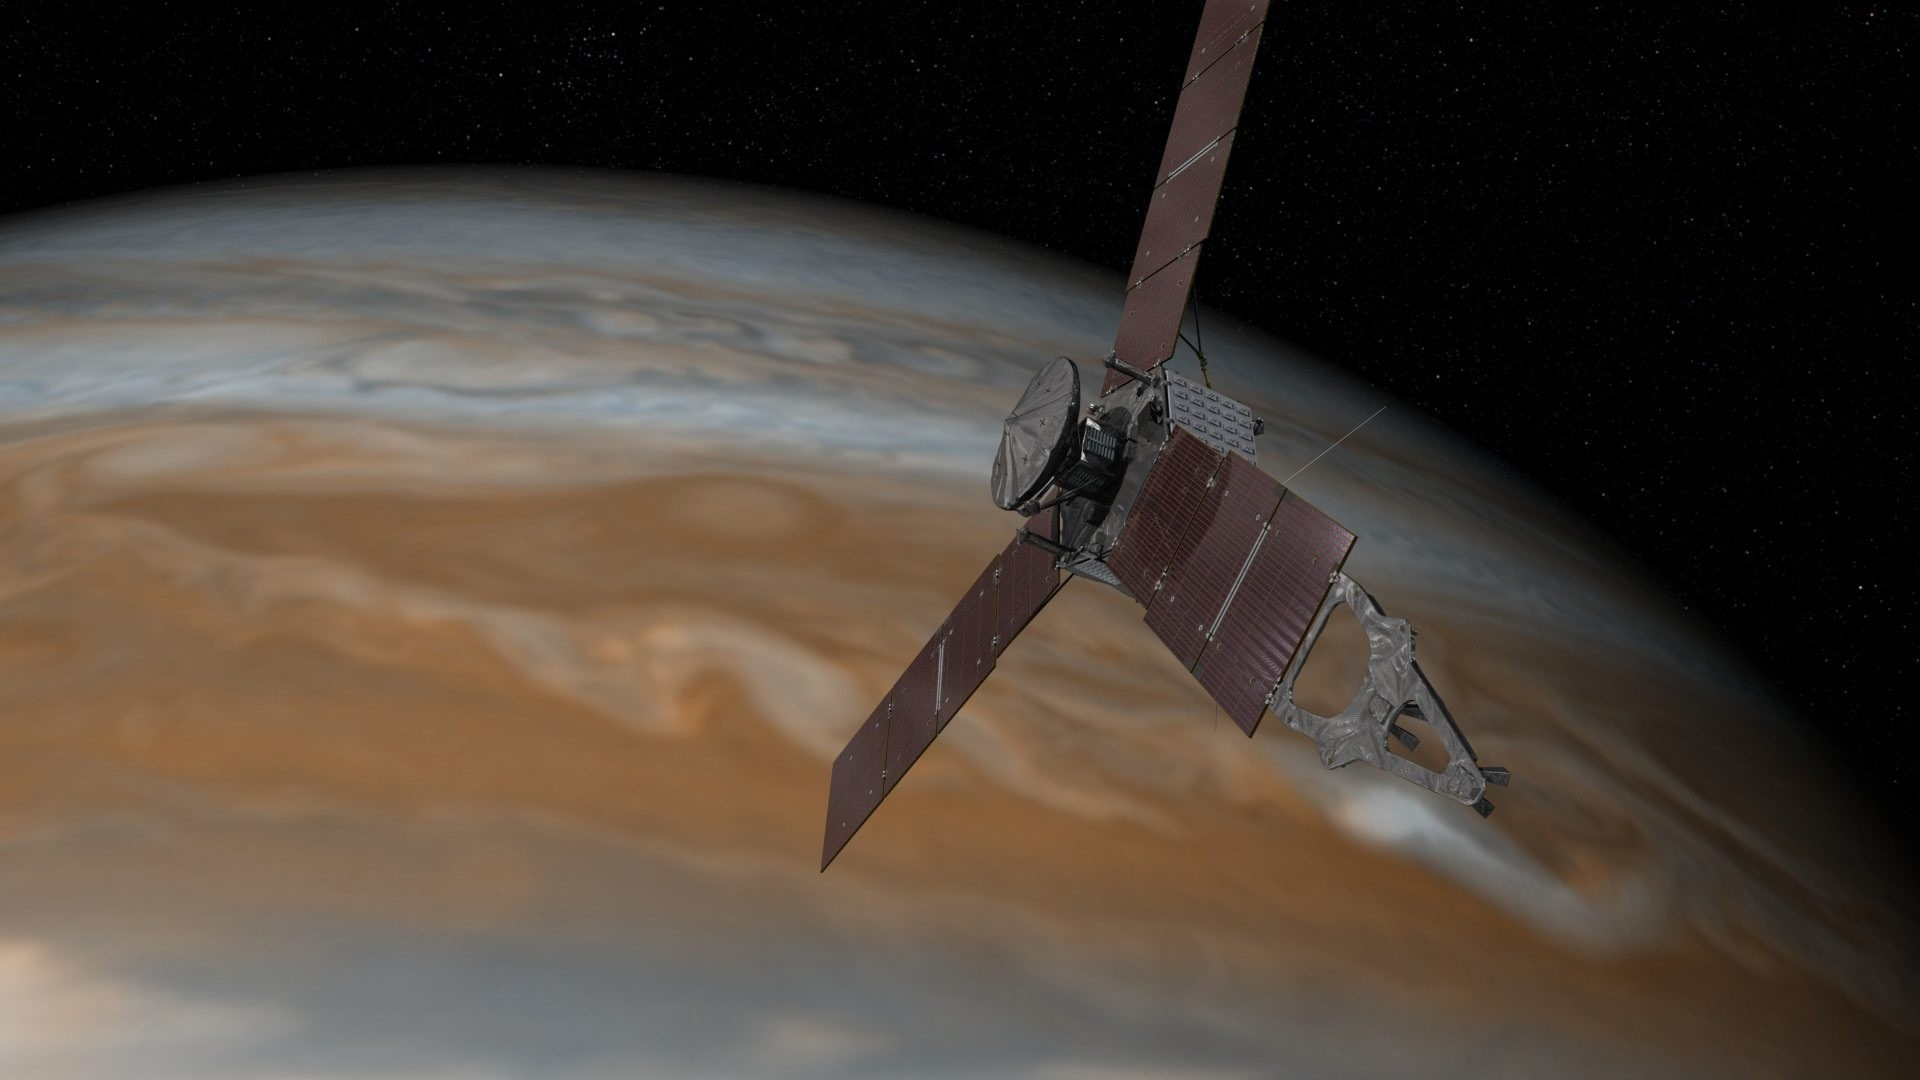 This artist's rendering provided by NASA and JPL-Caltech shows the Juno spacecraft above the planet Jupiter. (AP PHOTO)